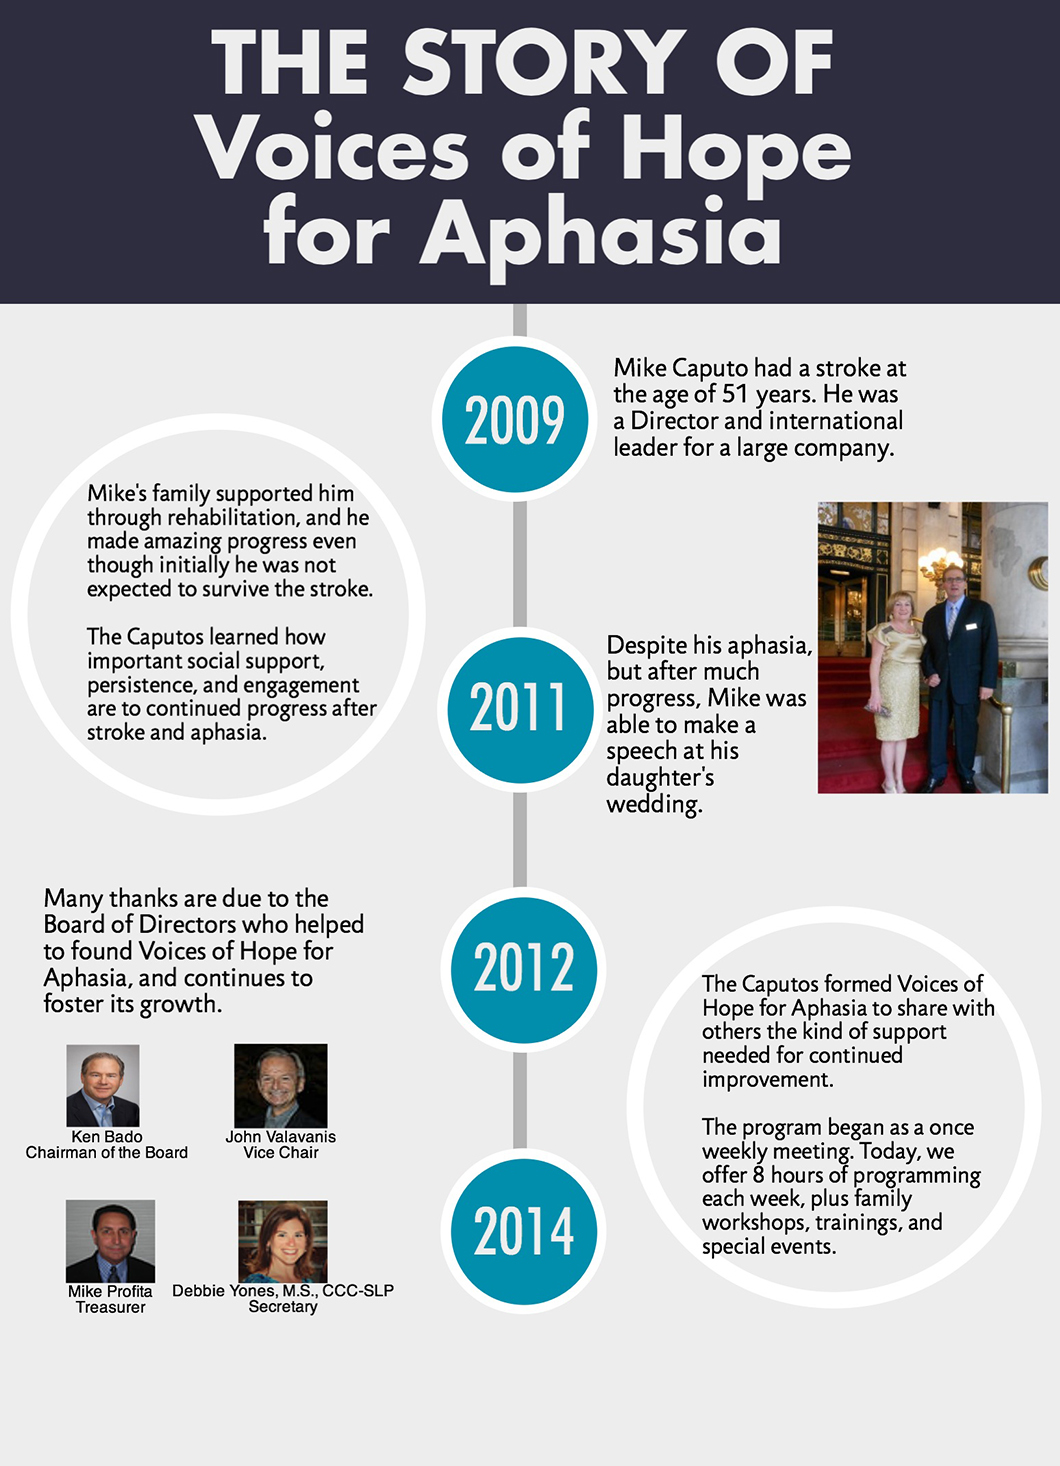 Voice of Hope for Aphasia Timeline